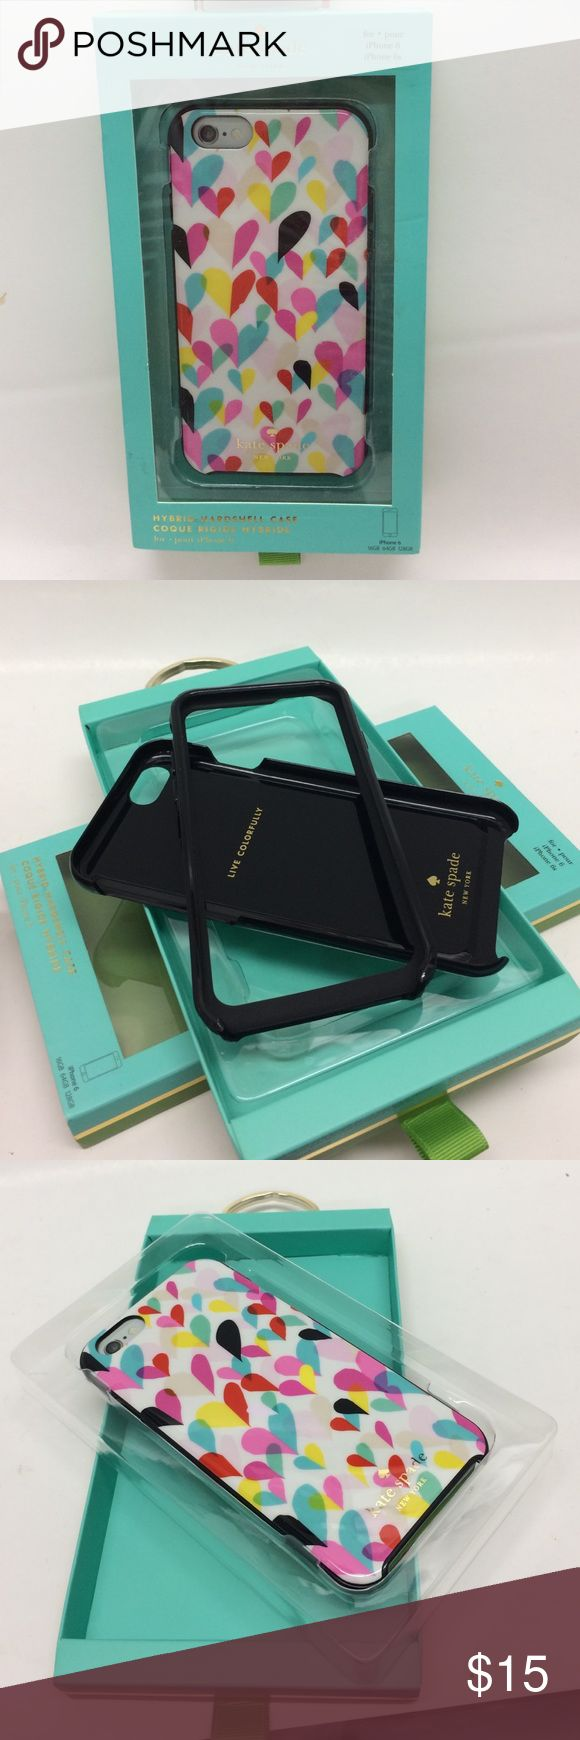 Kate Spade Hybrid IPhone 6/6s Case 12160 Kate Spade Hybrid IPhone 6/6s Case With Colorful Heart Design 12160 kate spade Accessories Phone Cases